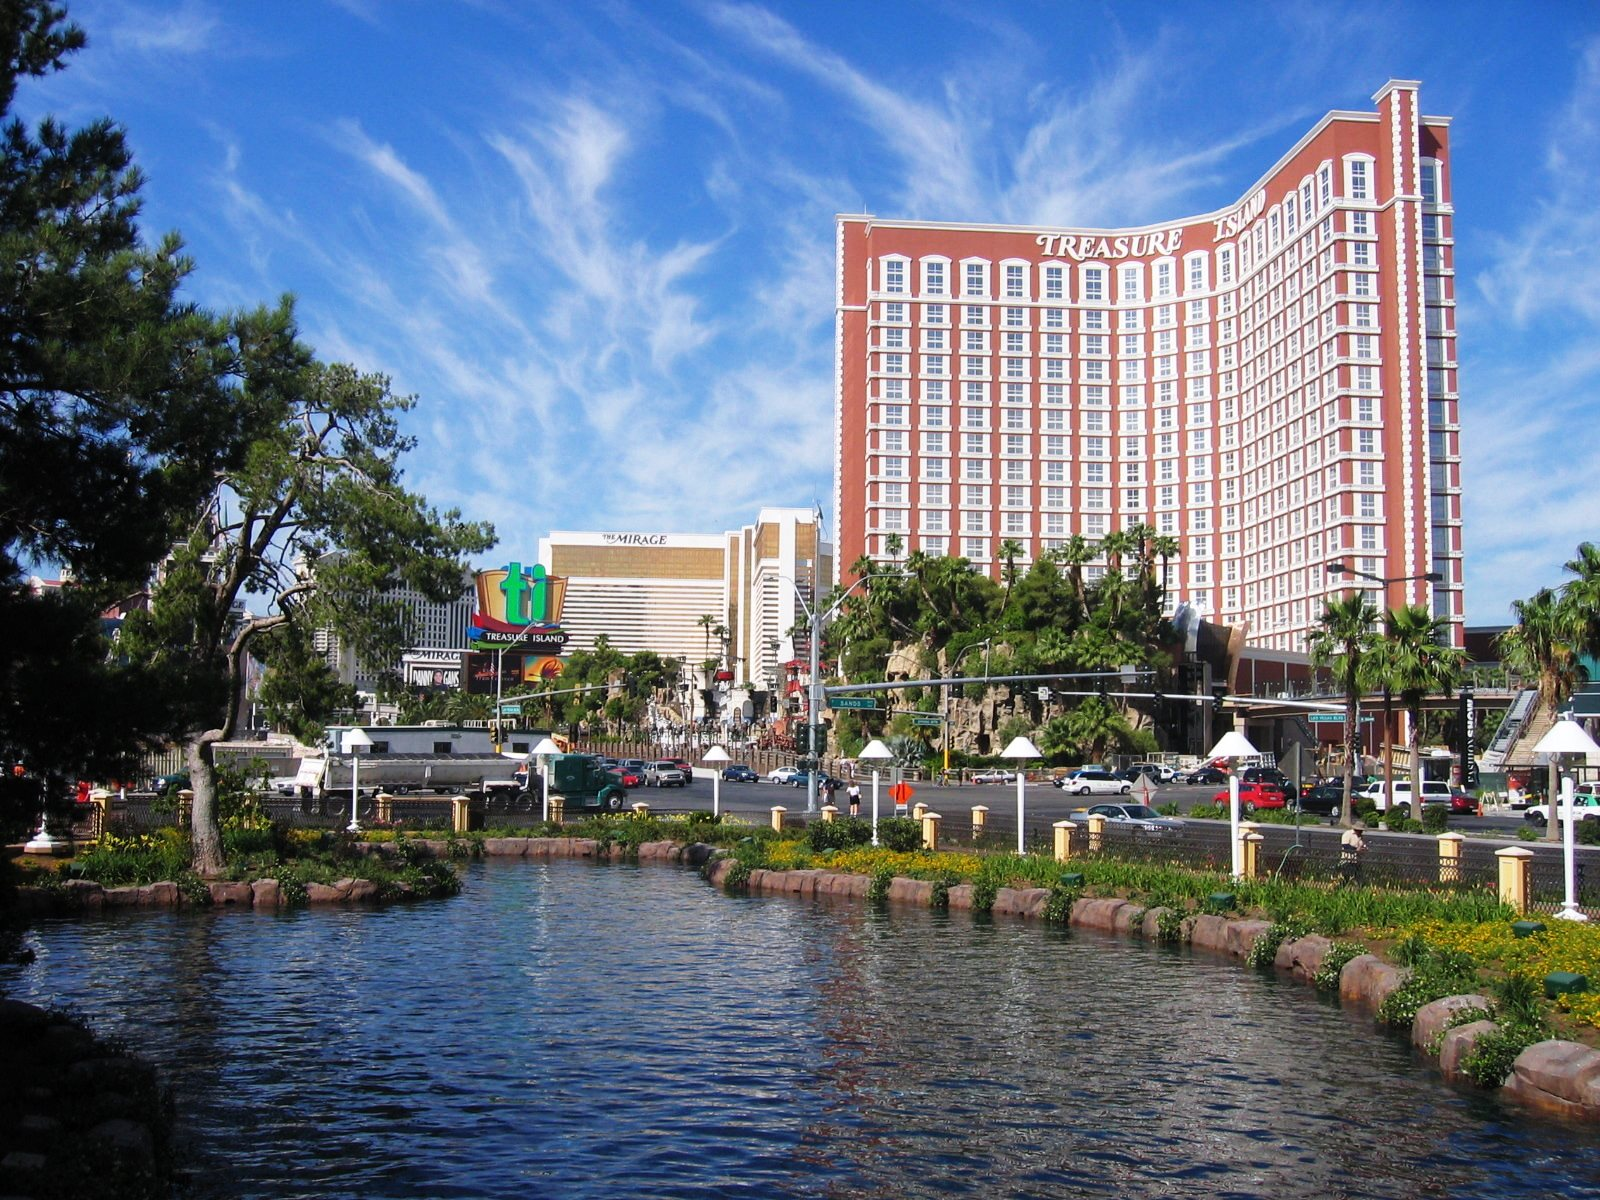 Venetian Las Vegas Archives  I Put My Life On A Shelf. Gap Auto Insurance Coverage Ap Physics Tutor. Online Associates Degree In Hospitality Management. How Much Does Private Jet Cost. Short Term Accomodation Singapore. Internet Advertising Rates Tax Lien Research. Trying To Sell My House Cheek Plastic Surgery. New Toyota Camry Price Medicare Global Period. Easy Carpentry Projects Police Officer Salary